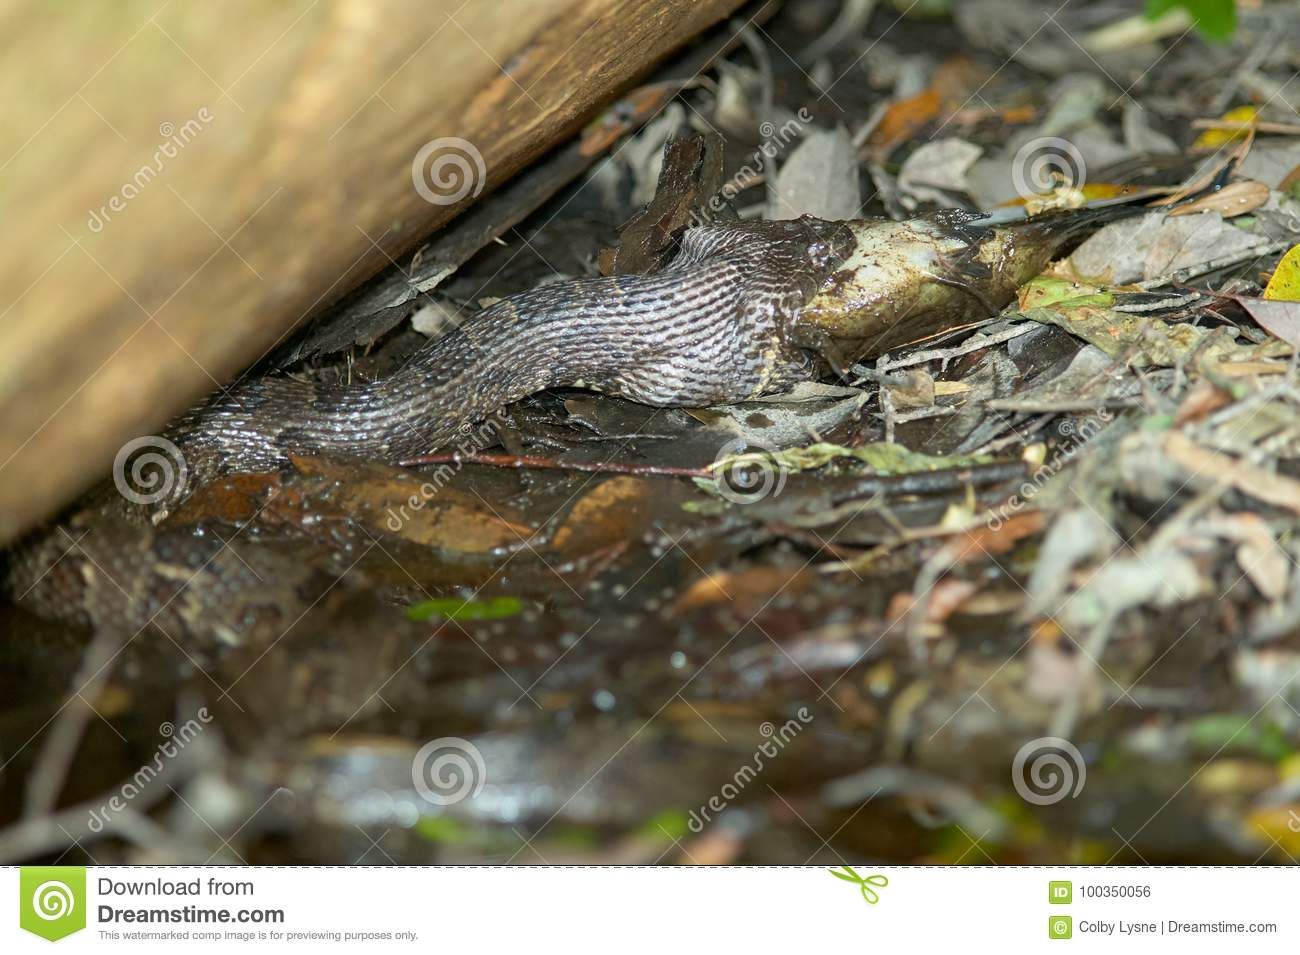 Water Moccasin Snake Swallowing Fish At Swamp Stock Photo Image Of